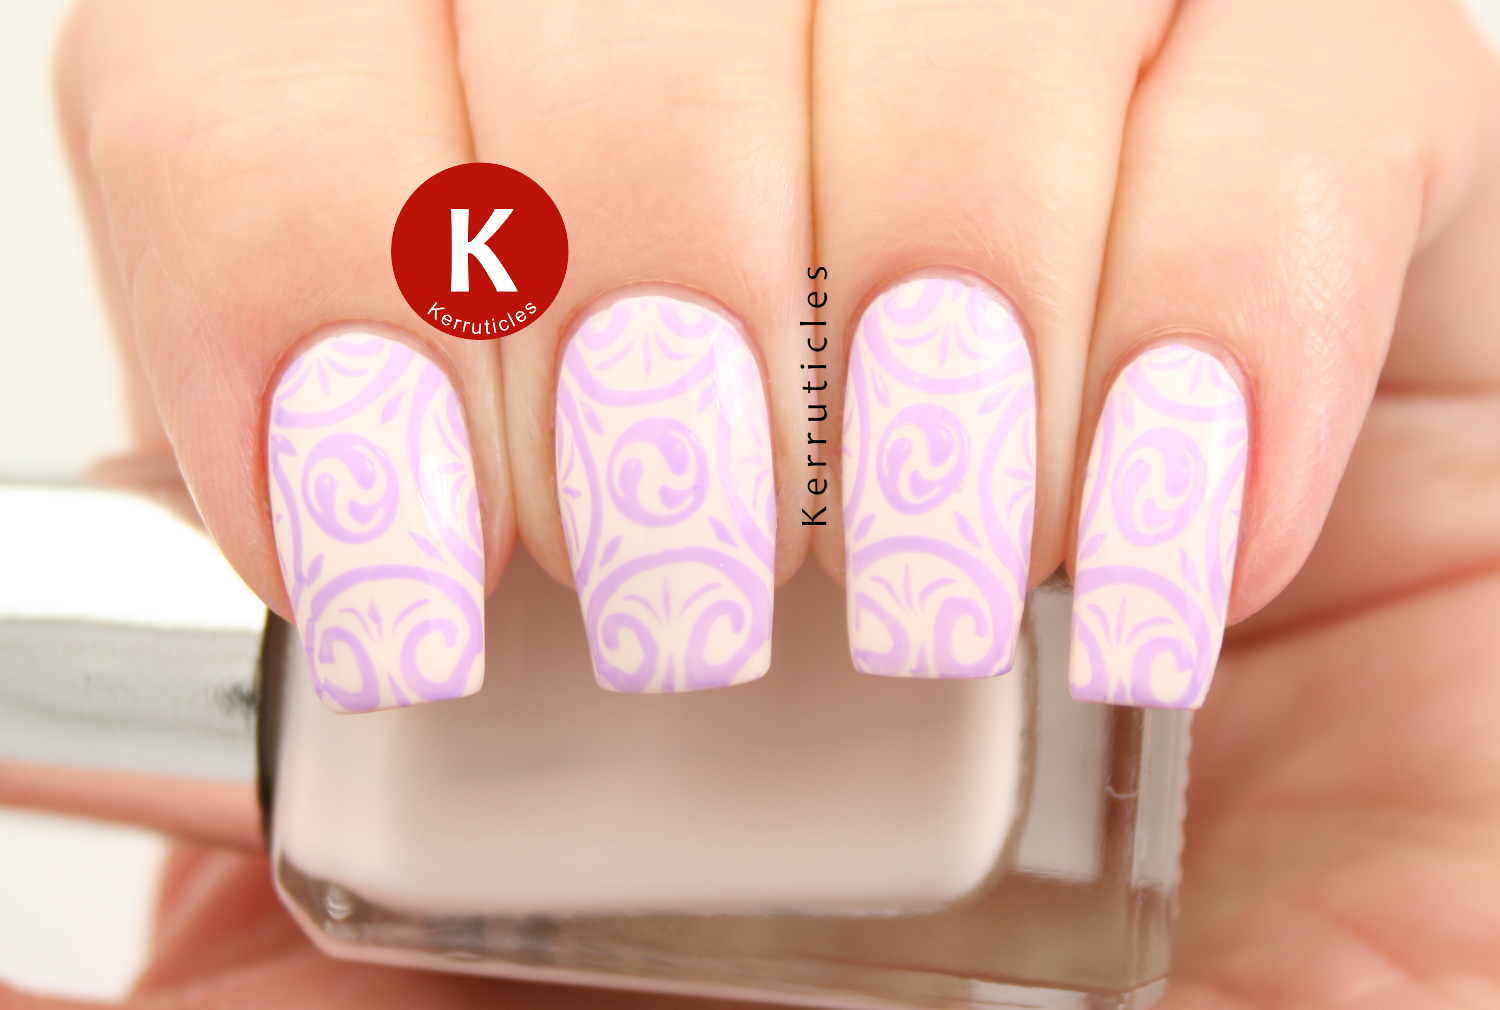 Barry M Coconut stamped with MoYou Nails Lilac using Pro Board VII